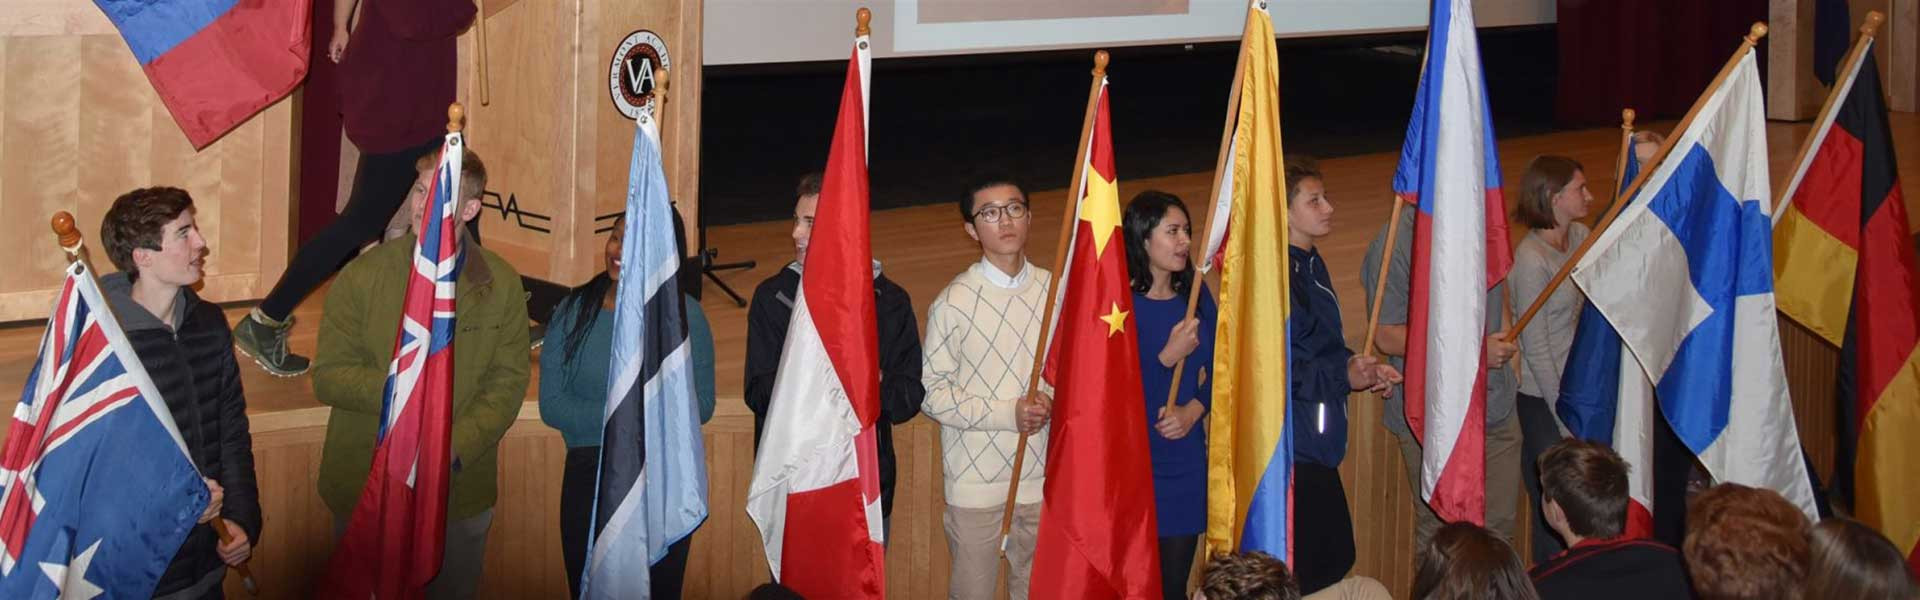 International Students with Flags at Vermont Academy